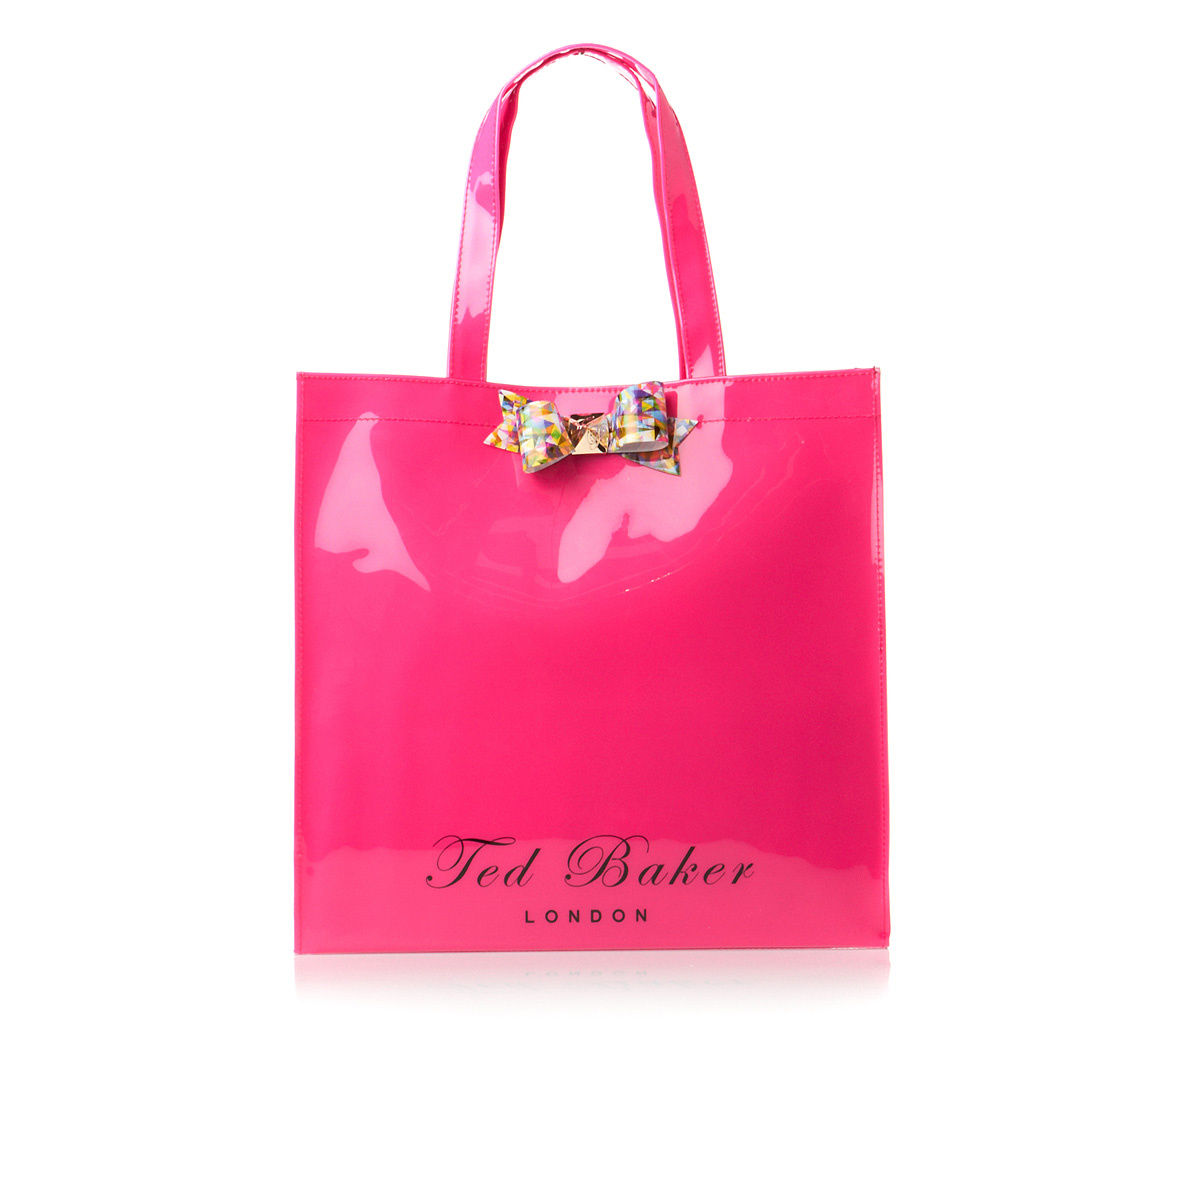 Ted Baker Bag Latest Designs For Girls Fashion Fist 7